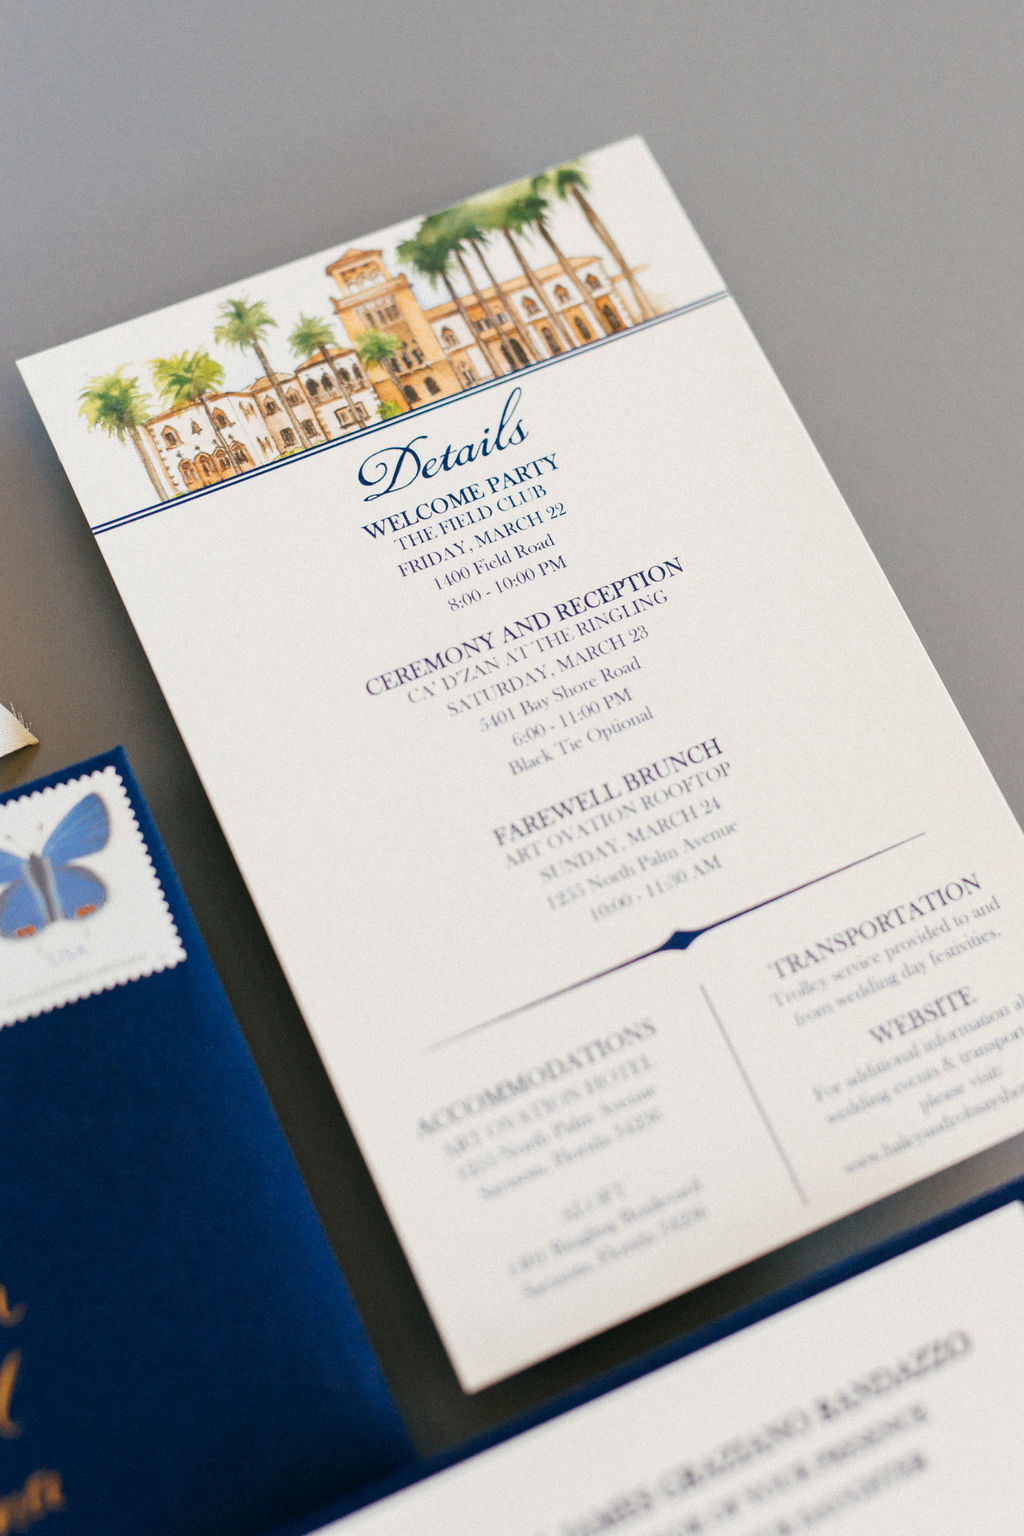 Navy Blue and White with Custom Watercolor Painting of Wedding Venue on Invitation